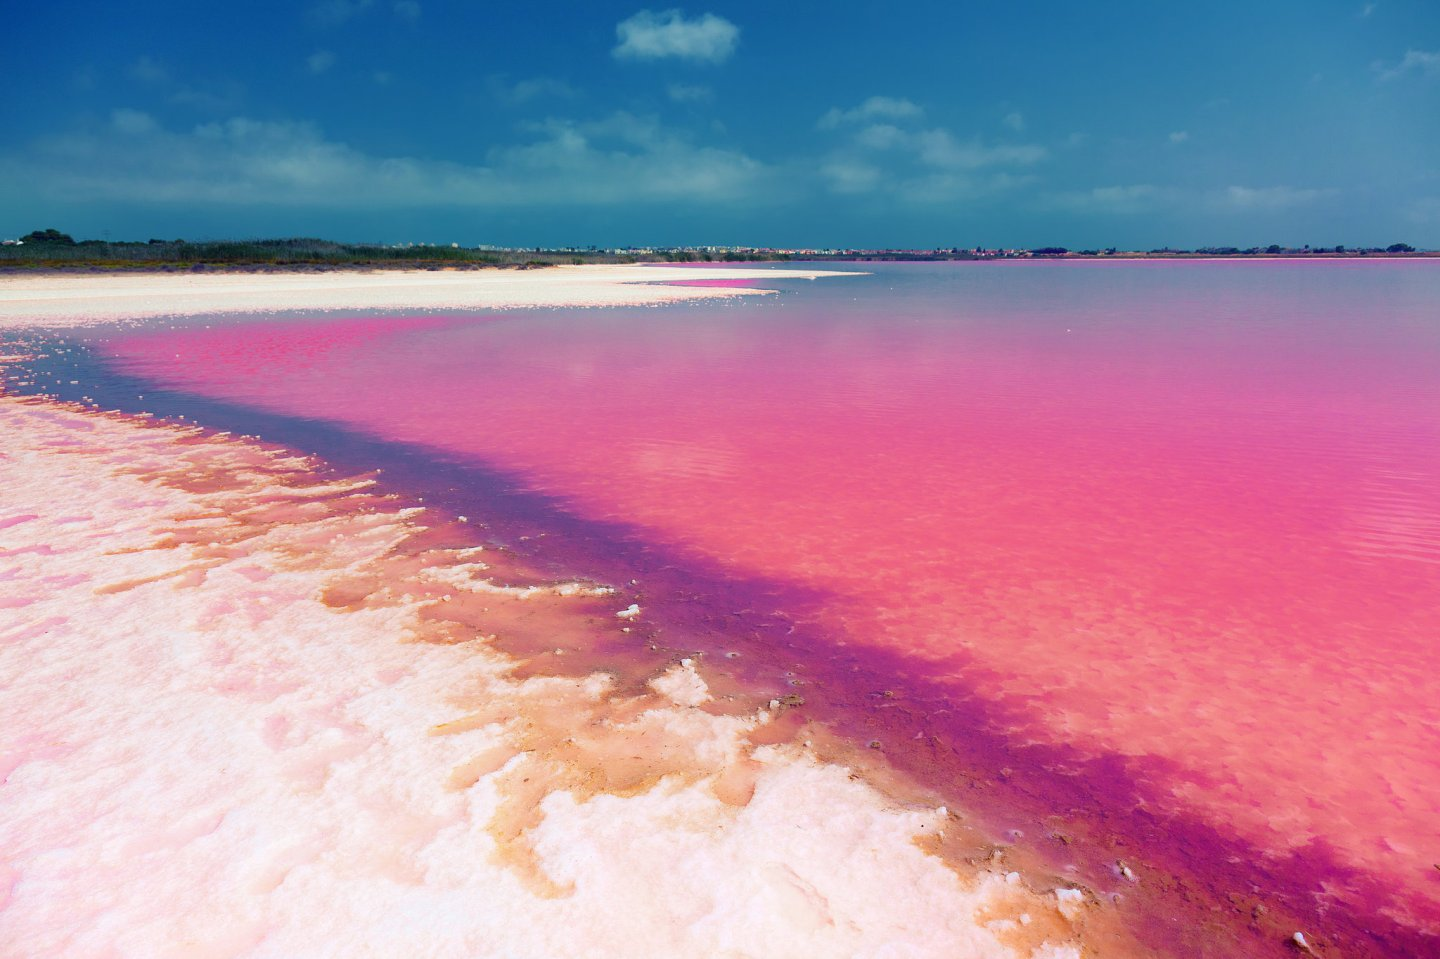 Pink salt lake in Torrevieja, Spain